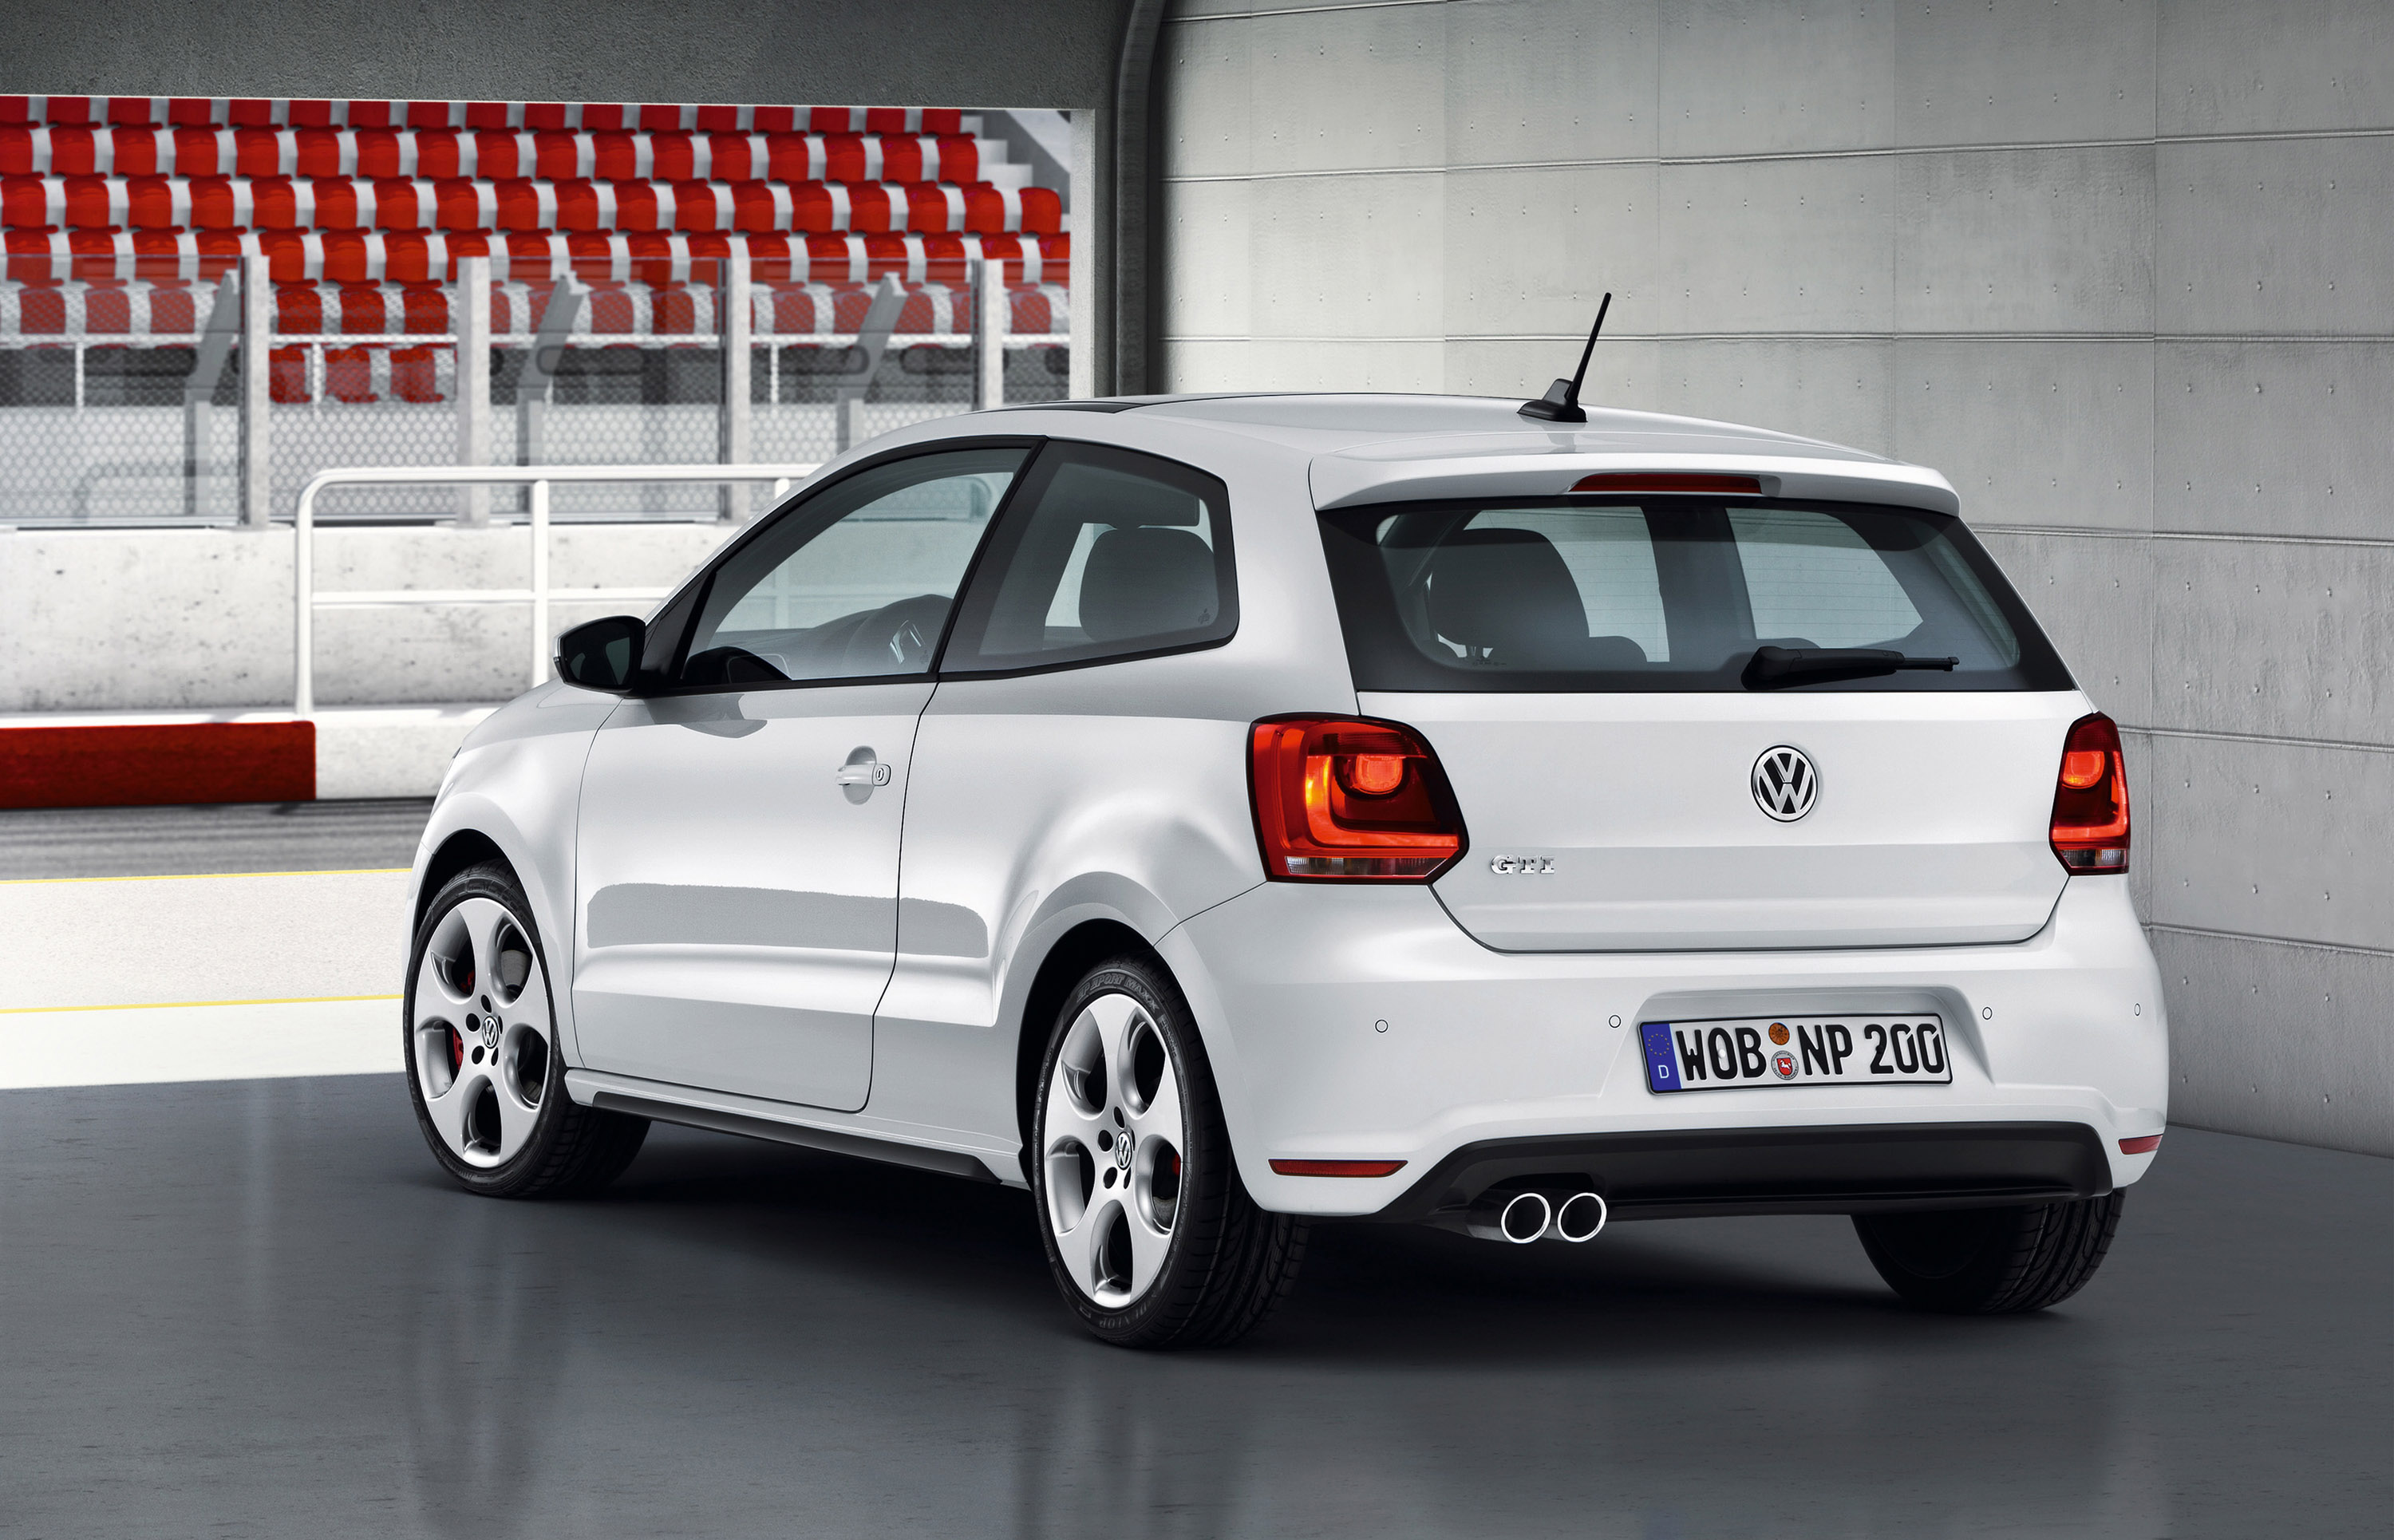 2011 volkswagen polo gti picture 33402. Black Bedroom Furniture Sets. Home Design Ideas